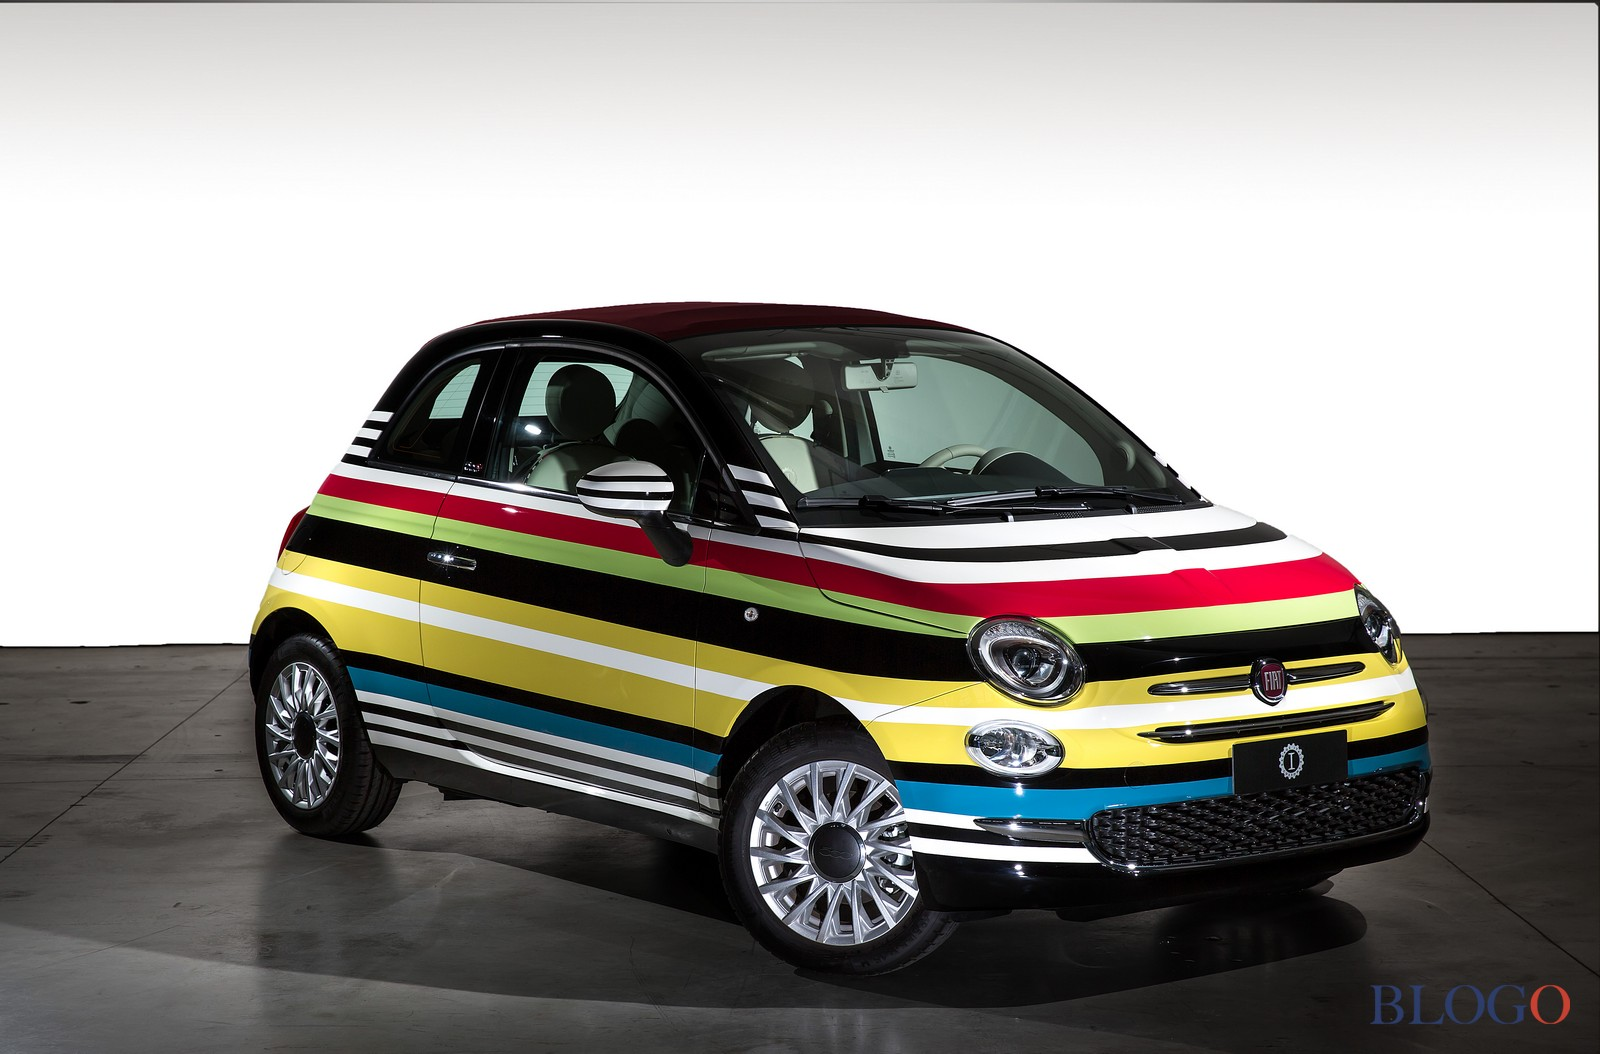 Fiat 500c missoni all 39 asta la one off di garage italia for 3 costo del garage indipendente